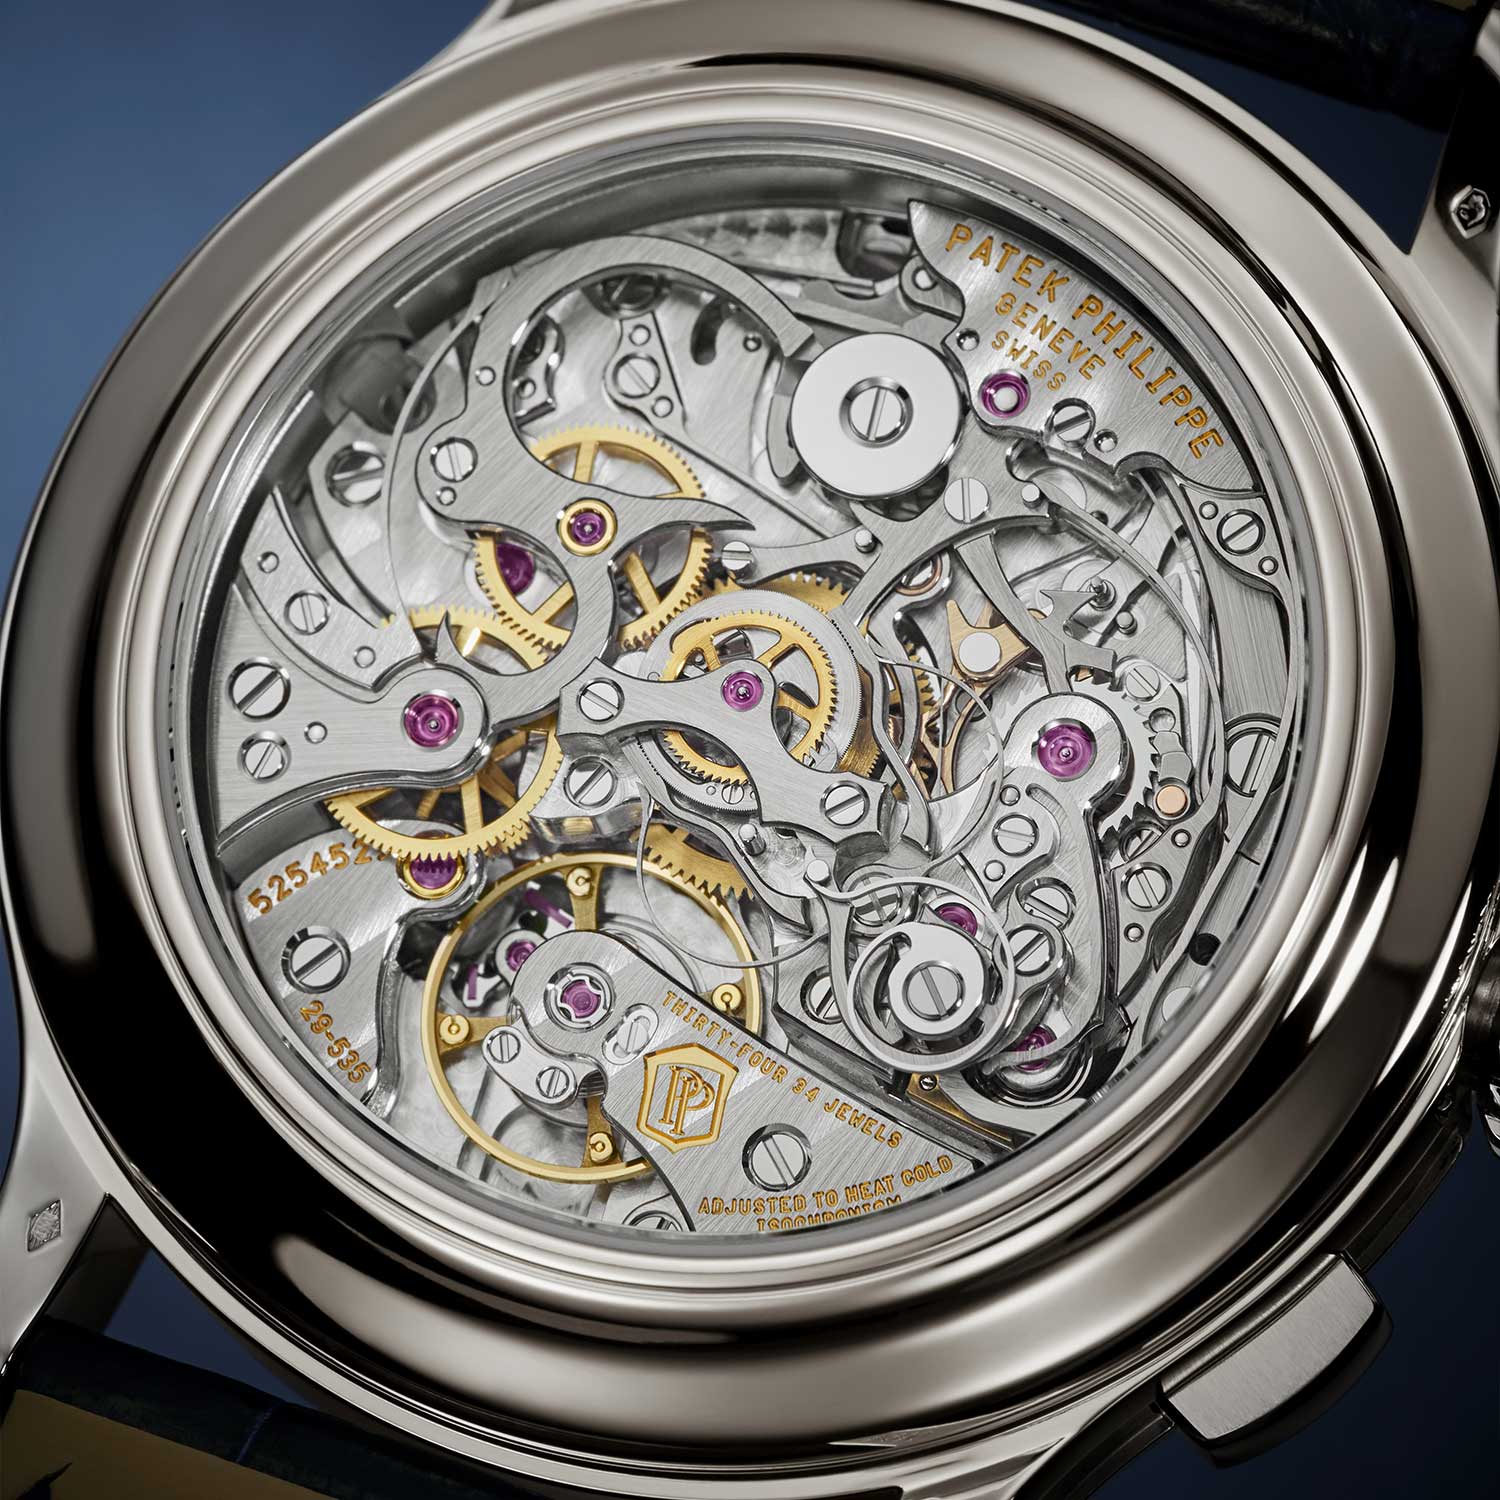 Seen through the caseback of the 5370P, the CH 29-535 PS split seconds chronograph movement powering it